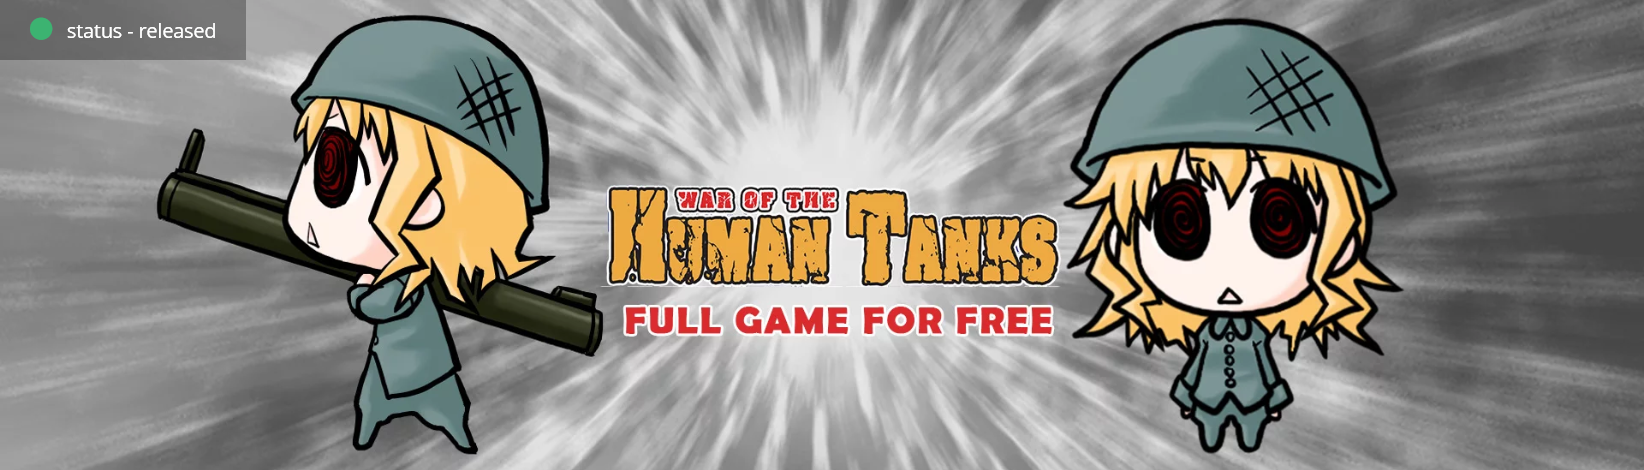 Screenshot_2019-05-19 War of the Human Tanks Indiegala Developers.png